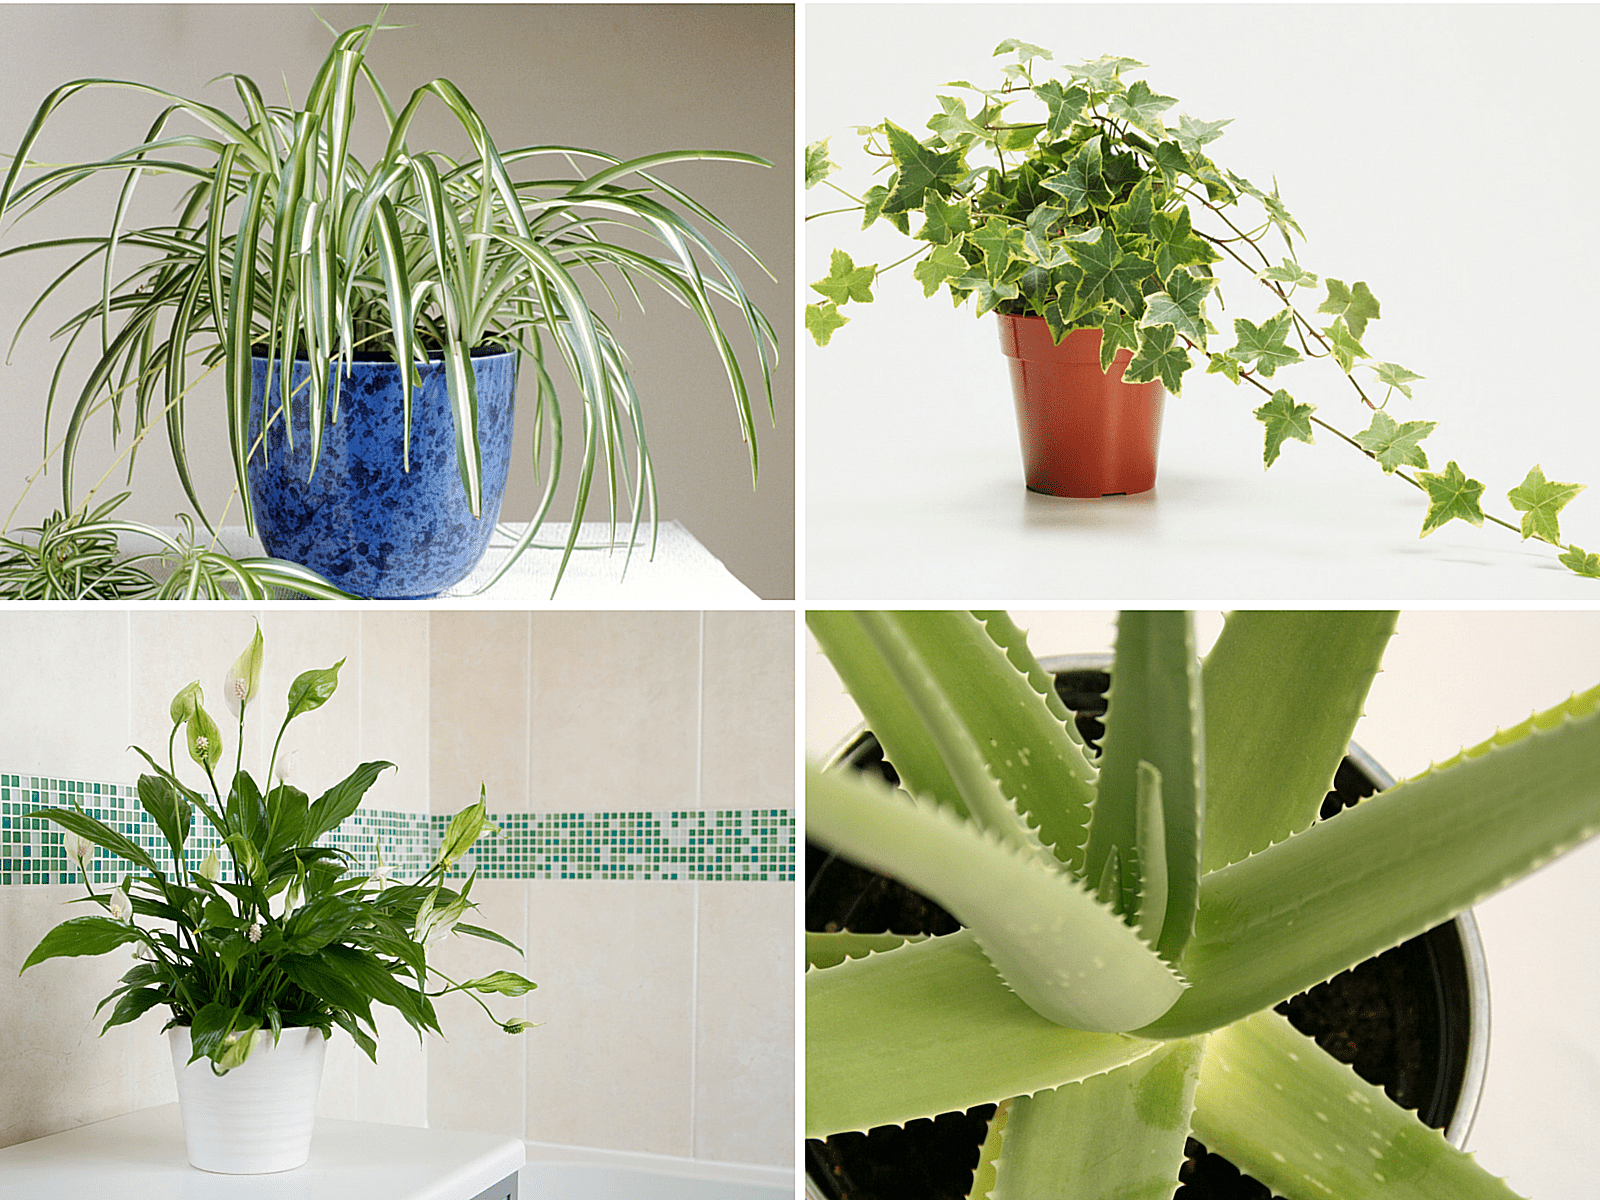 Air-Purifying House Plants for the Home